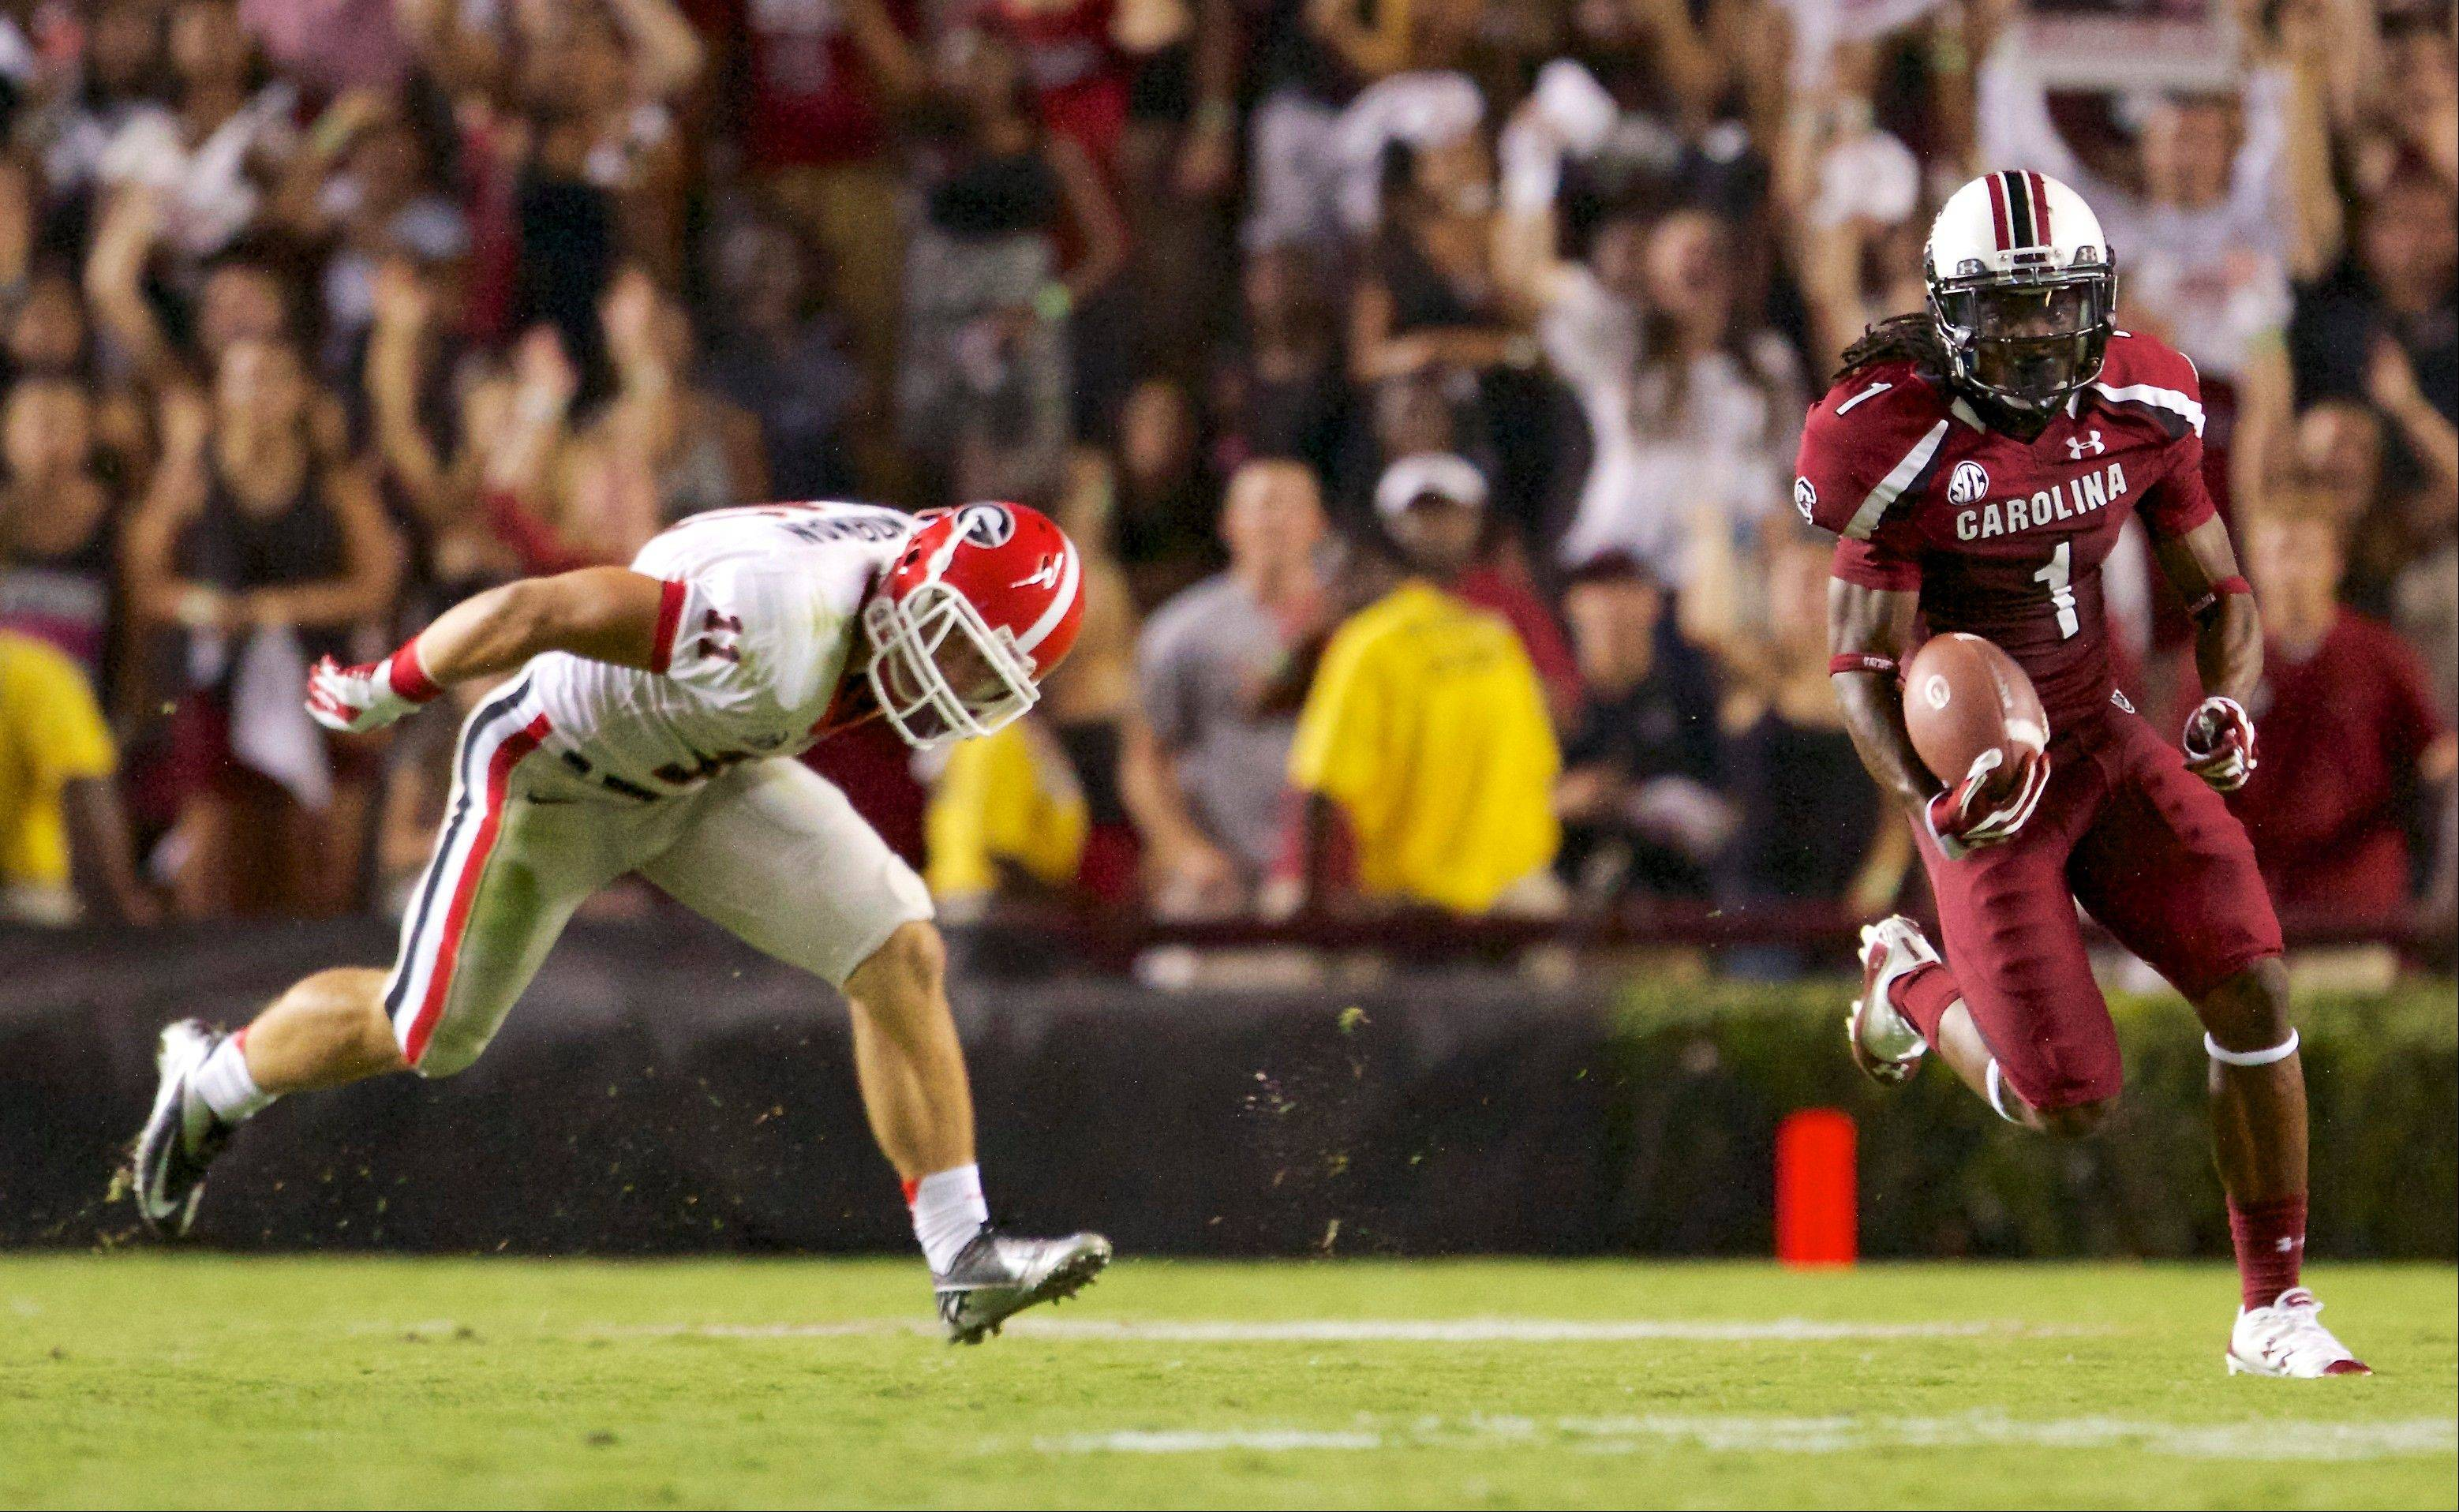 South Carolina�s Ace Sanders, right, breaks away from Georgia�s Connor Norman on a kick return during the second half Saturday at Williams-Brice Stadium in Columbia, S.C.